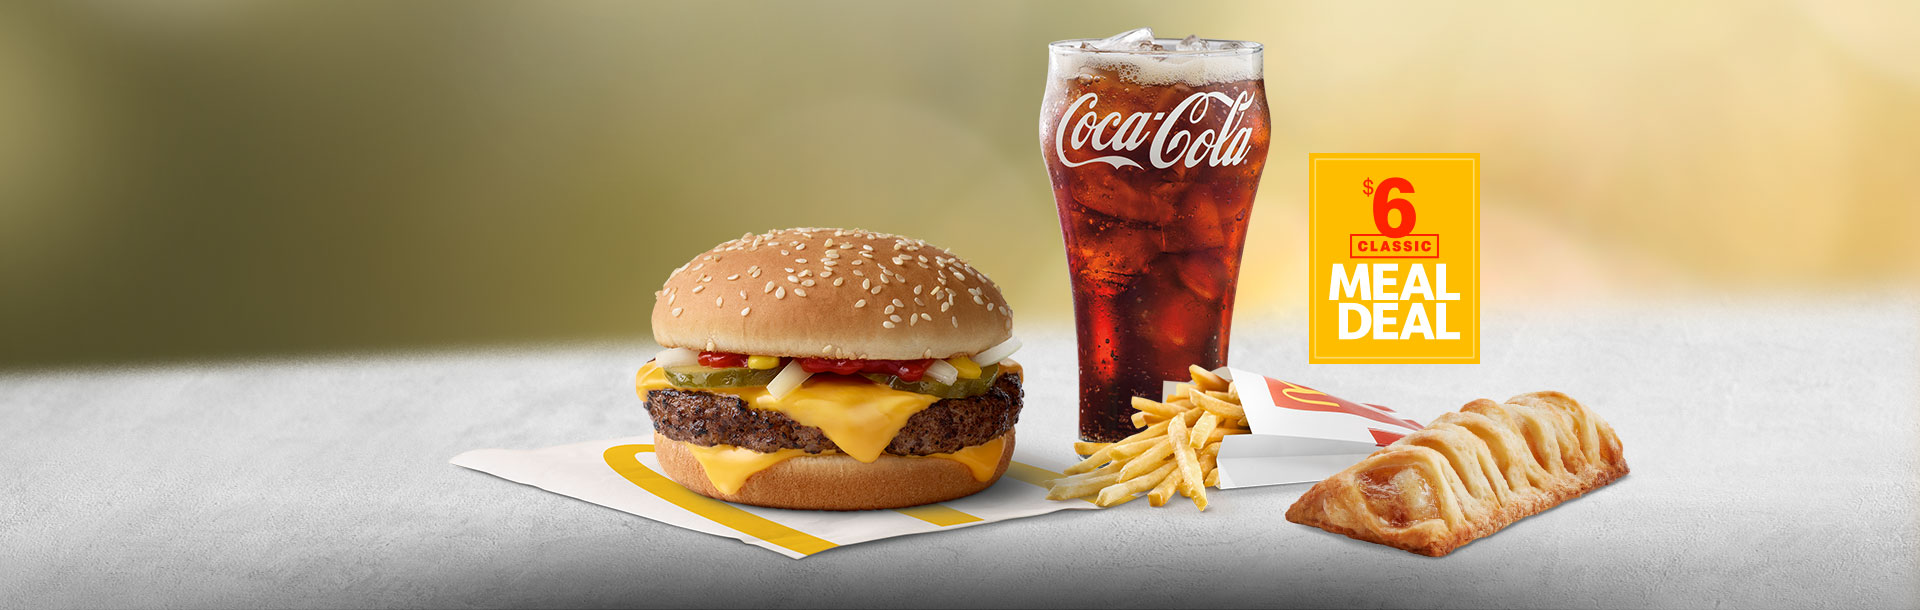 $6 Classic Meal Deal with Quarter Pounder with Cheese, Fries, Apple Pie, Coca-Cola